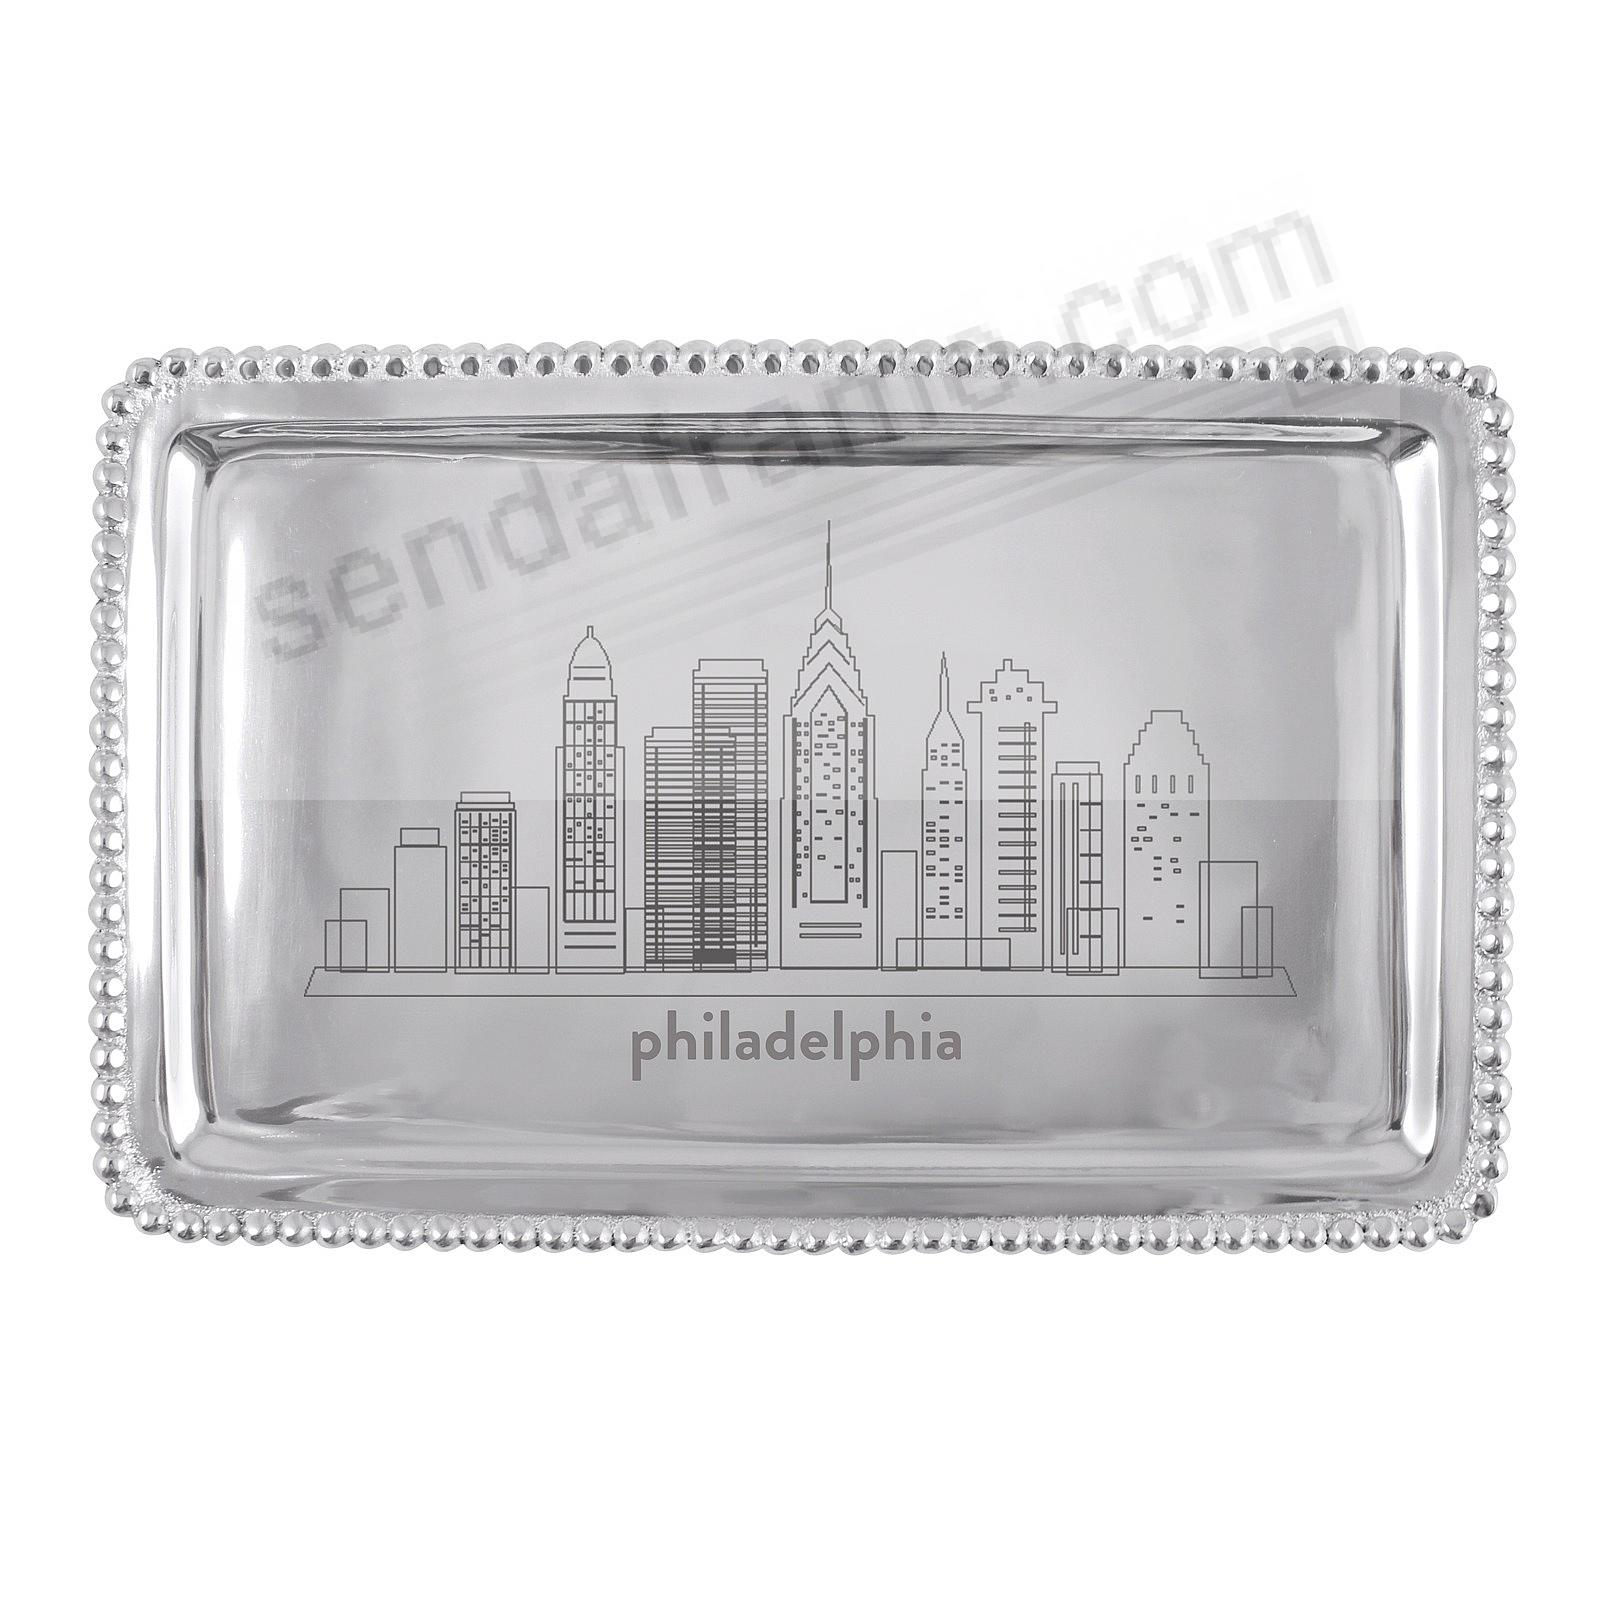 The PHILADELPHIA-PA CITYSCAPE BEADED BUFFET TRAY crafted by Mariposa®